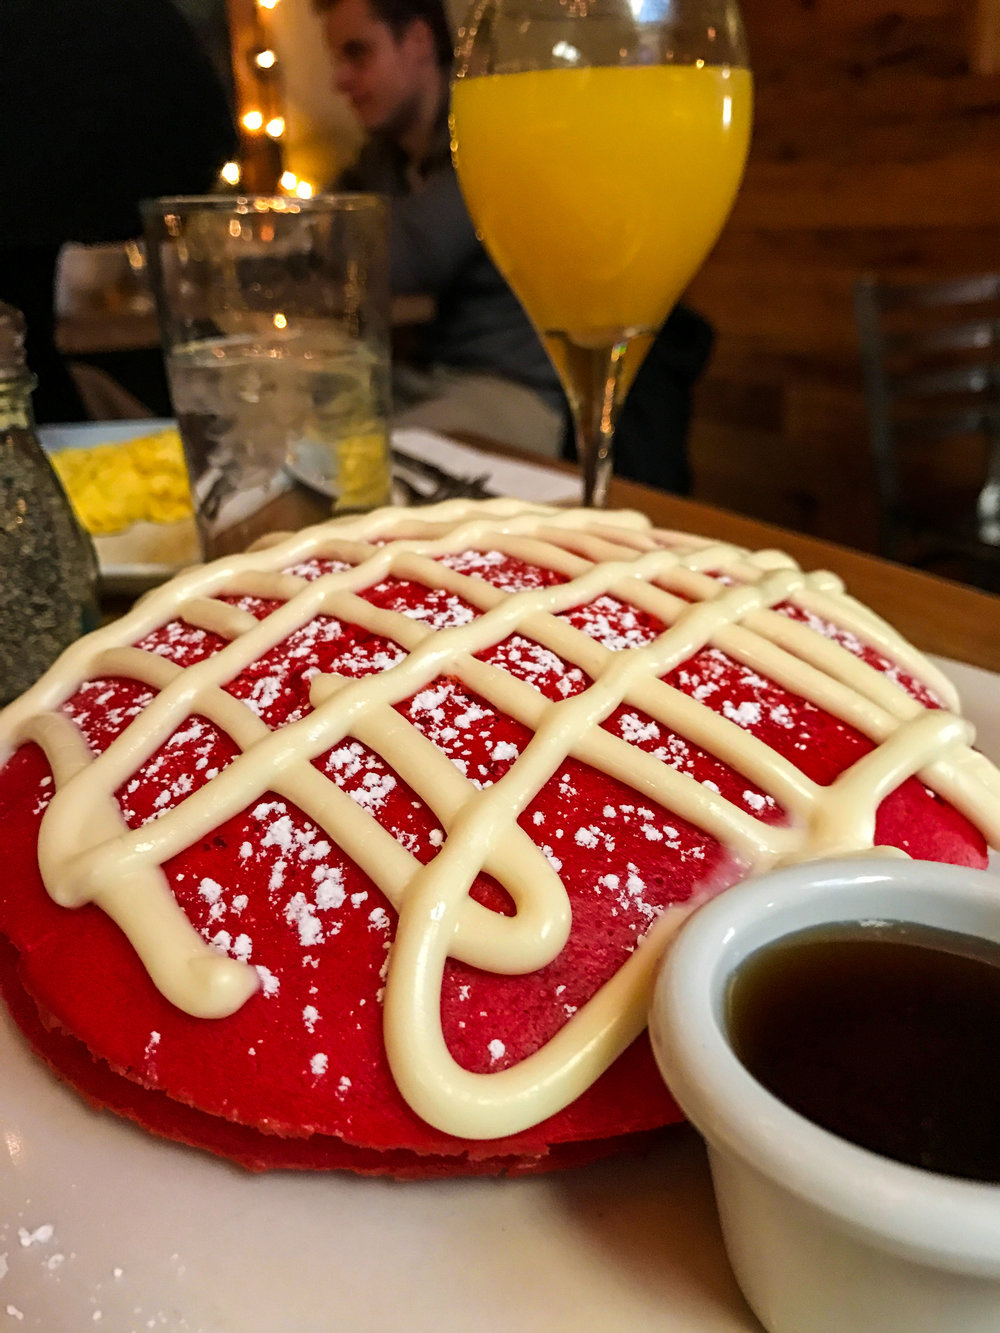 Red Velvet Pancakes from Two Door Tavern - Cream cheese icing & butter, maple syrup.$15.95 for entree & drink - $24.95 for bottomless (90 min. limit)